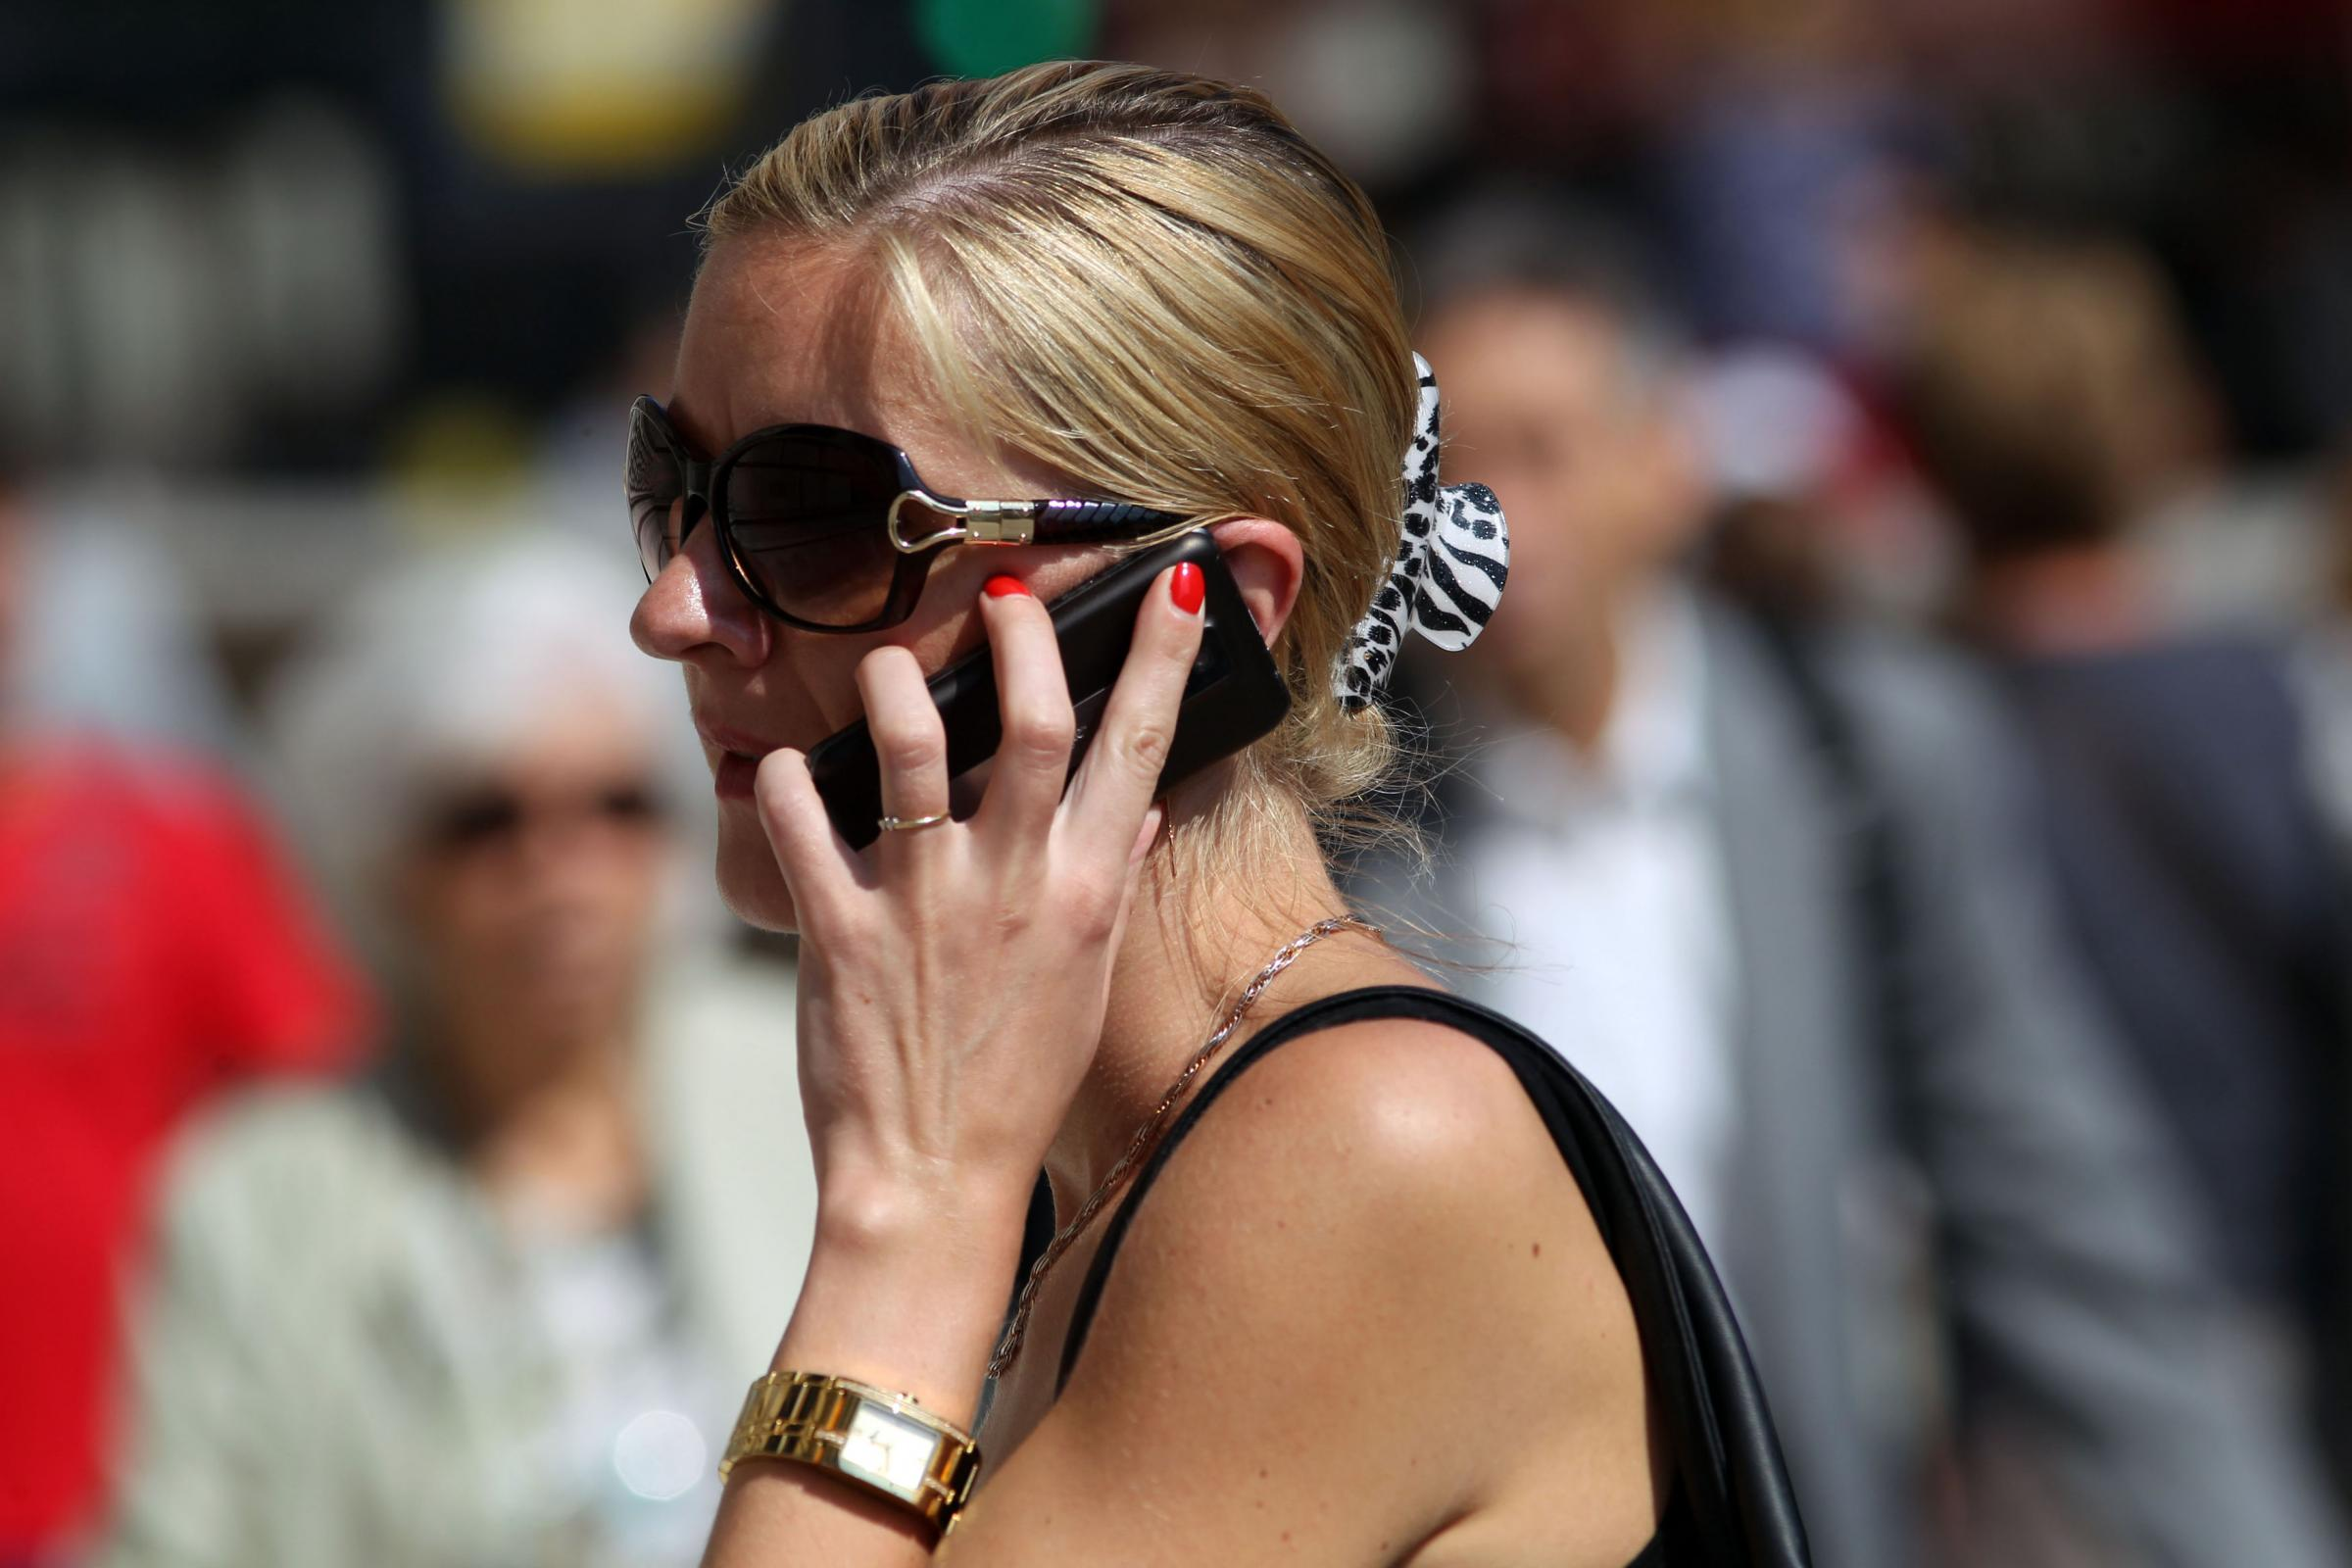 EU pulls plug on mobile roaming charges